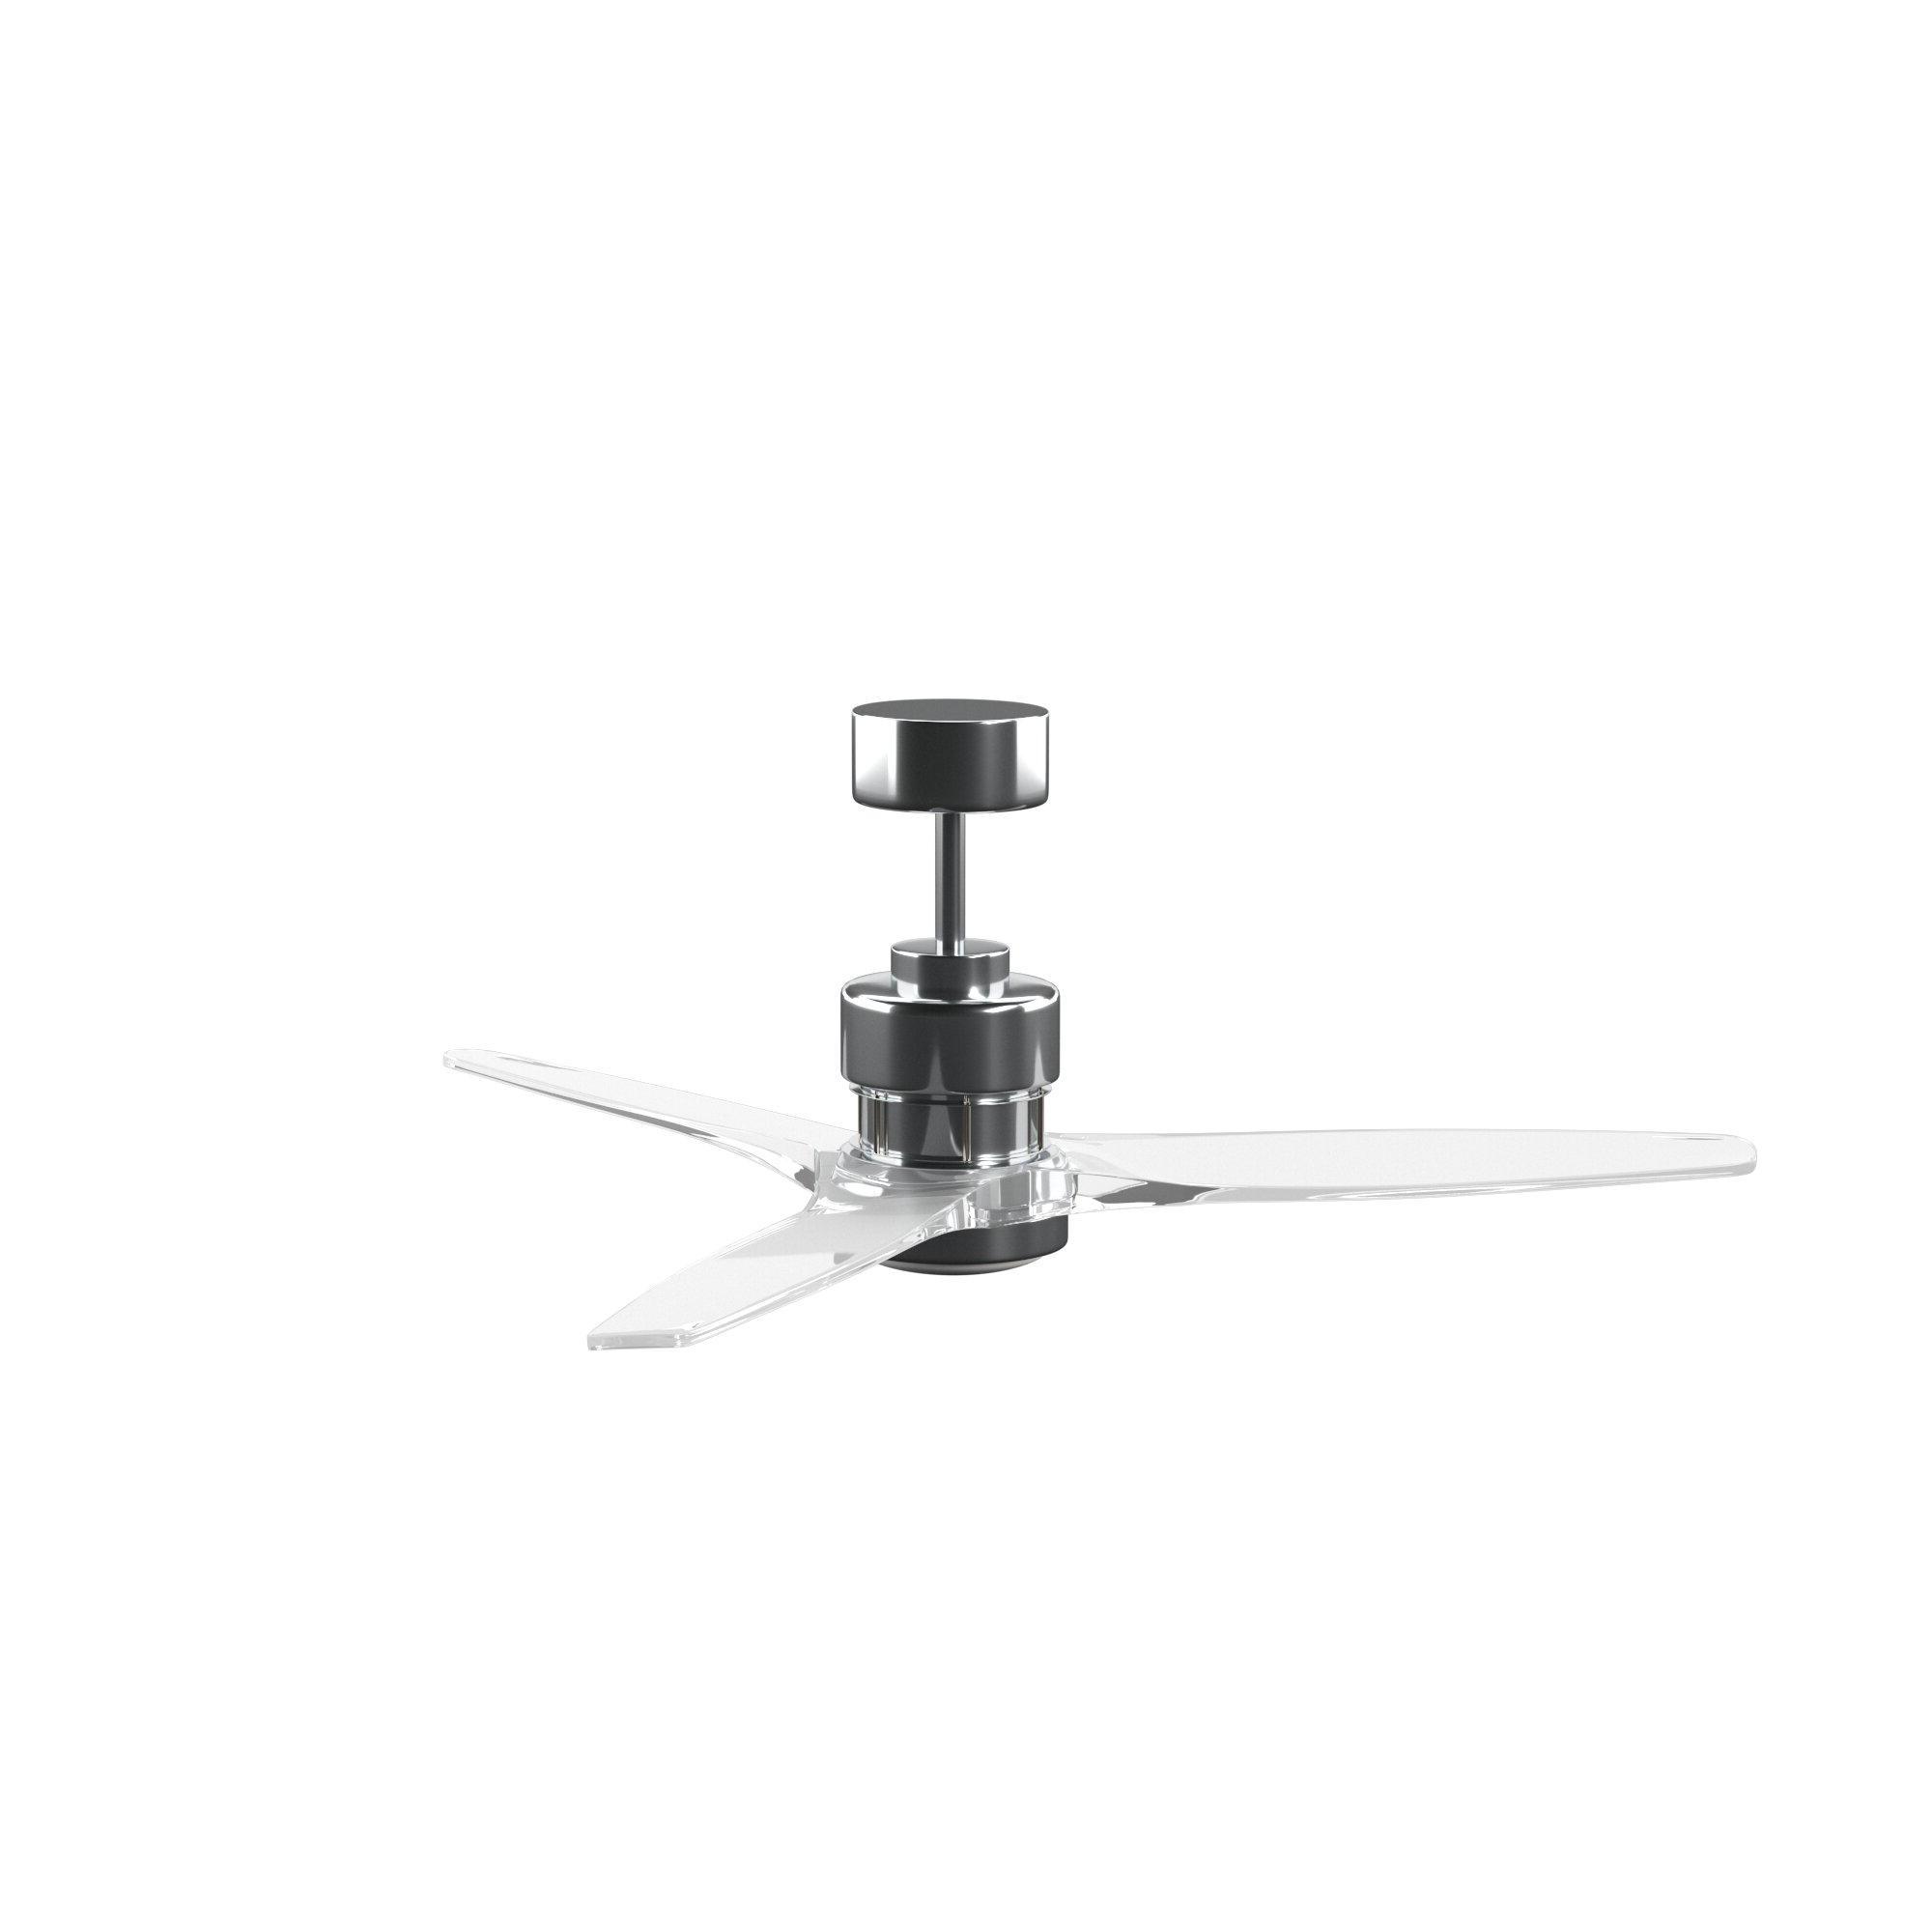 "Well Known 52"" Mcdaniels 3 Blade Led Ceiling Fan With Remote, Light Kit Included Inside Loft 3 Blade Ceiling Fans (View 18 of 20)"